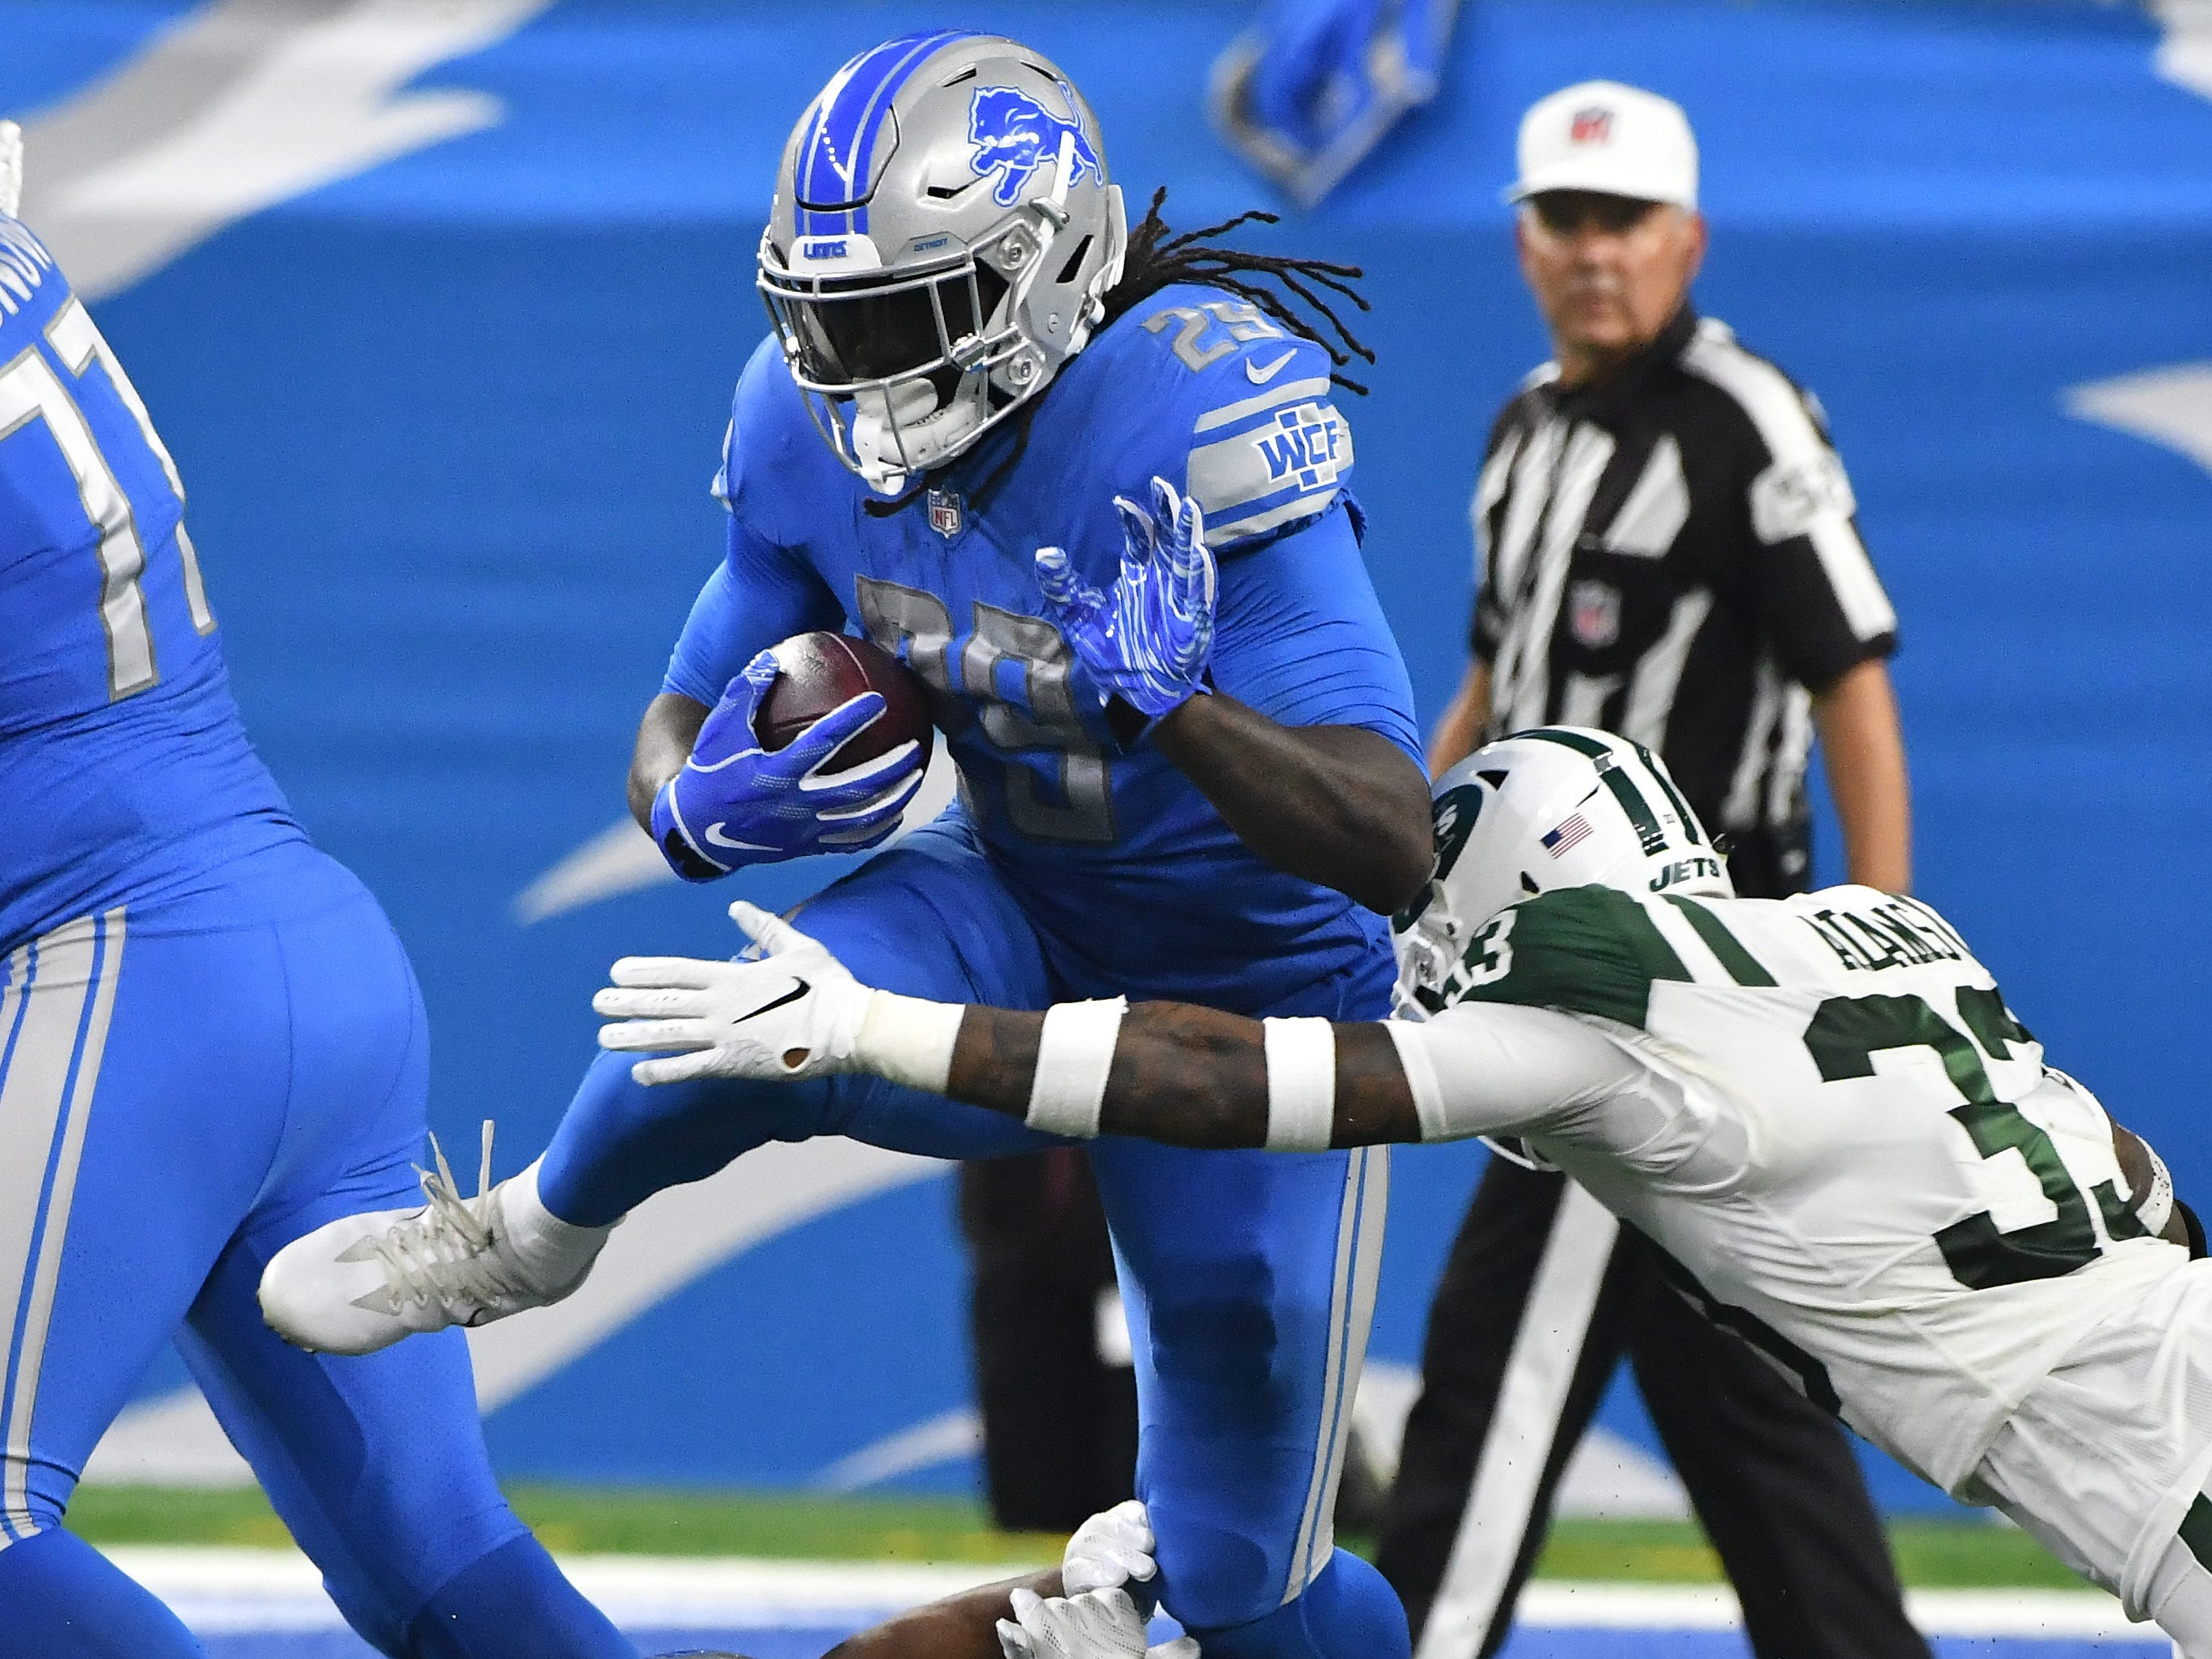 RB LeGarrette Blount : A free-agent miscalculation, Blount wound up one of the season's biggest disappointments. Unquestionably the worst year of his nine-year career, he averaged just 2.7 yards per carry and wasn't the short-yardage force the Lions had hoped. Of his 154 carries, only 25 resulted in first downs. Grade: F